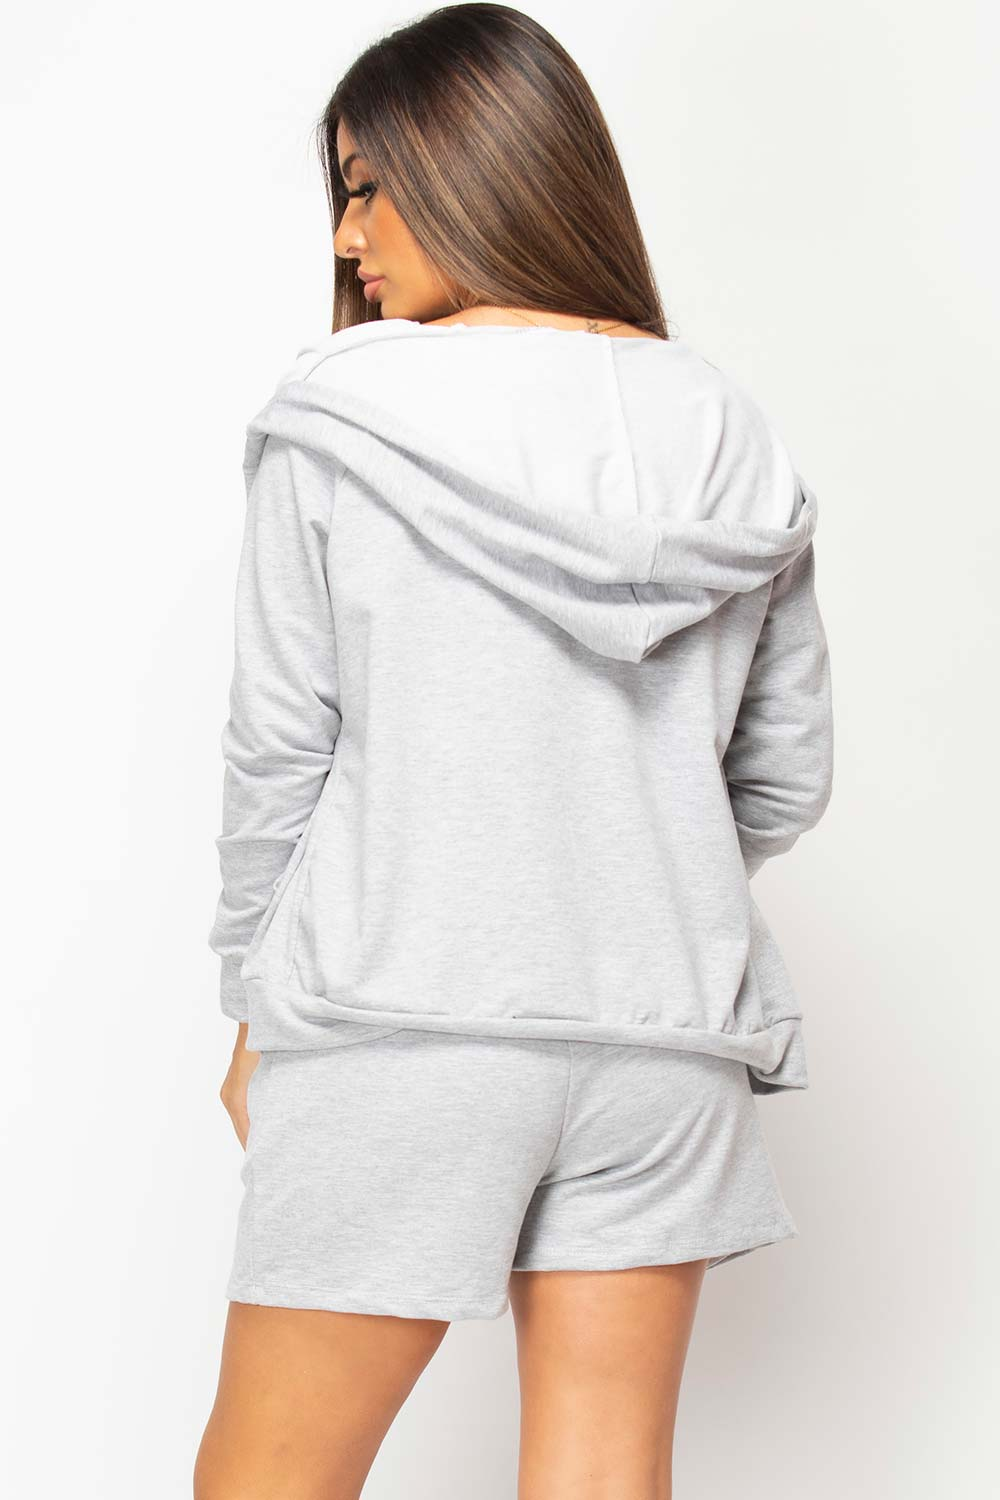 grey three piece shorts loungewear set